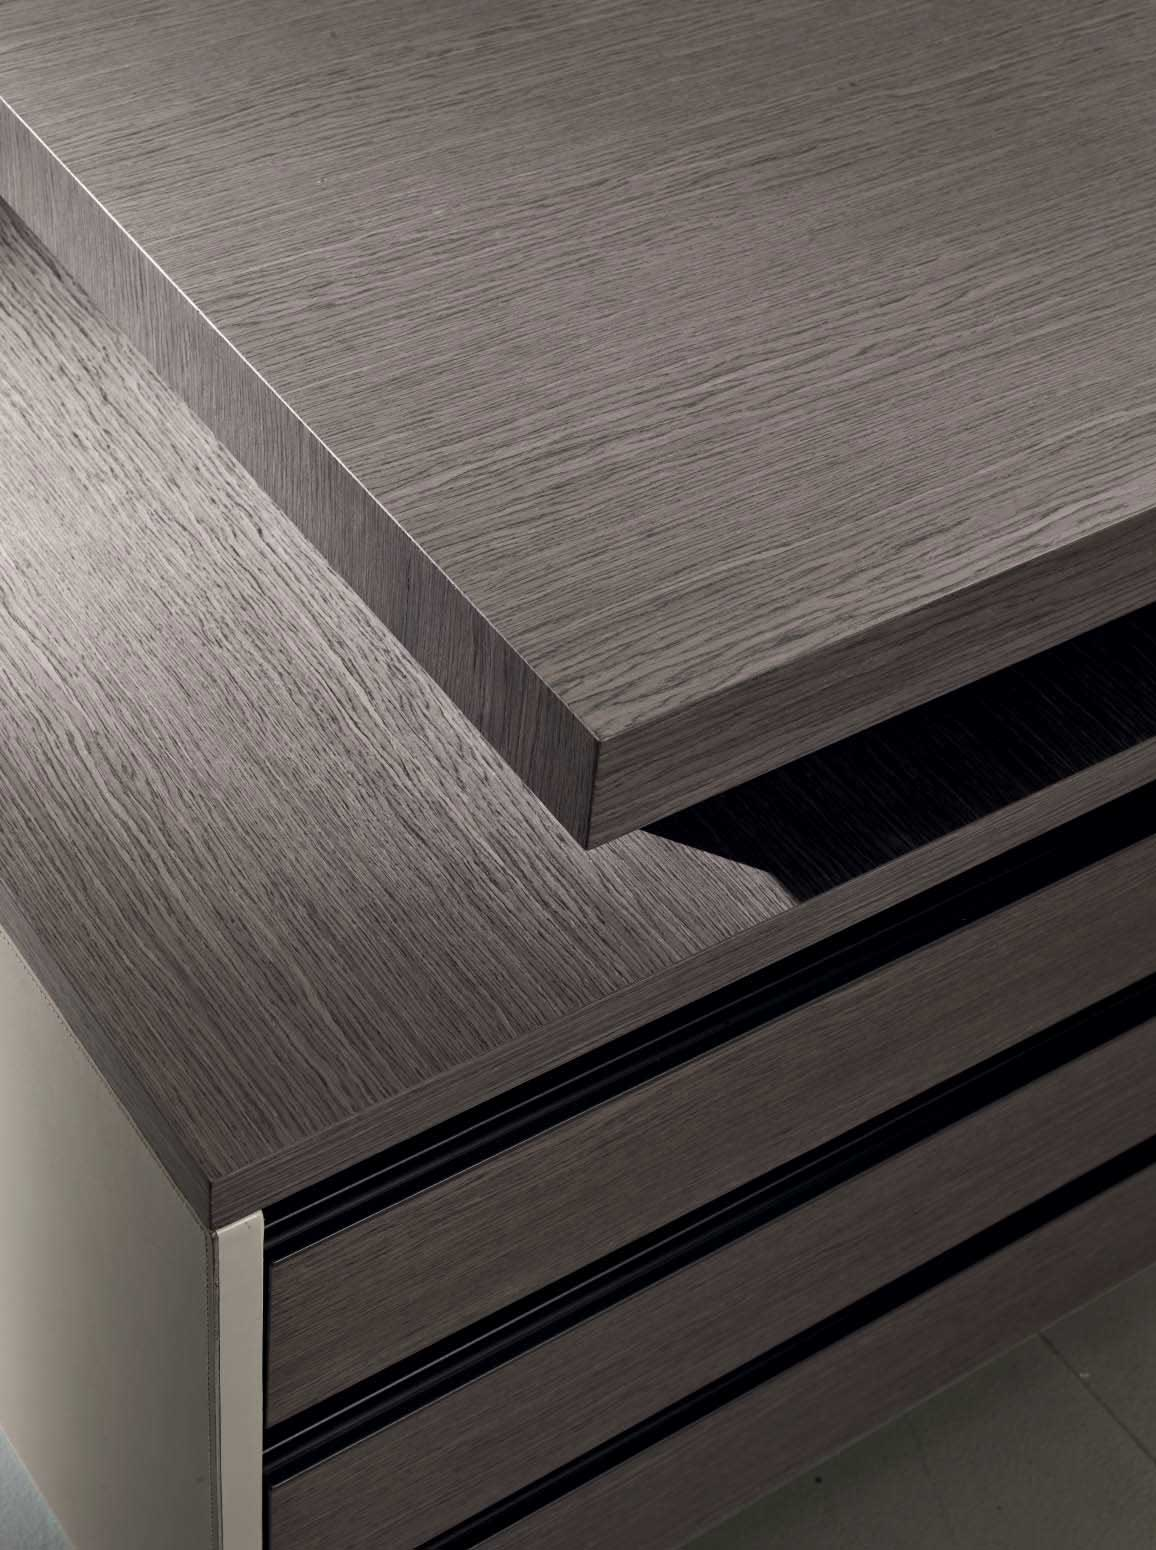 Matteo Nunziati gives soft shades to Kefa executive desk in oak and beige leather. Offer yourself the more elegant and luxurious furniture for your office.